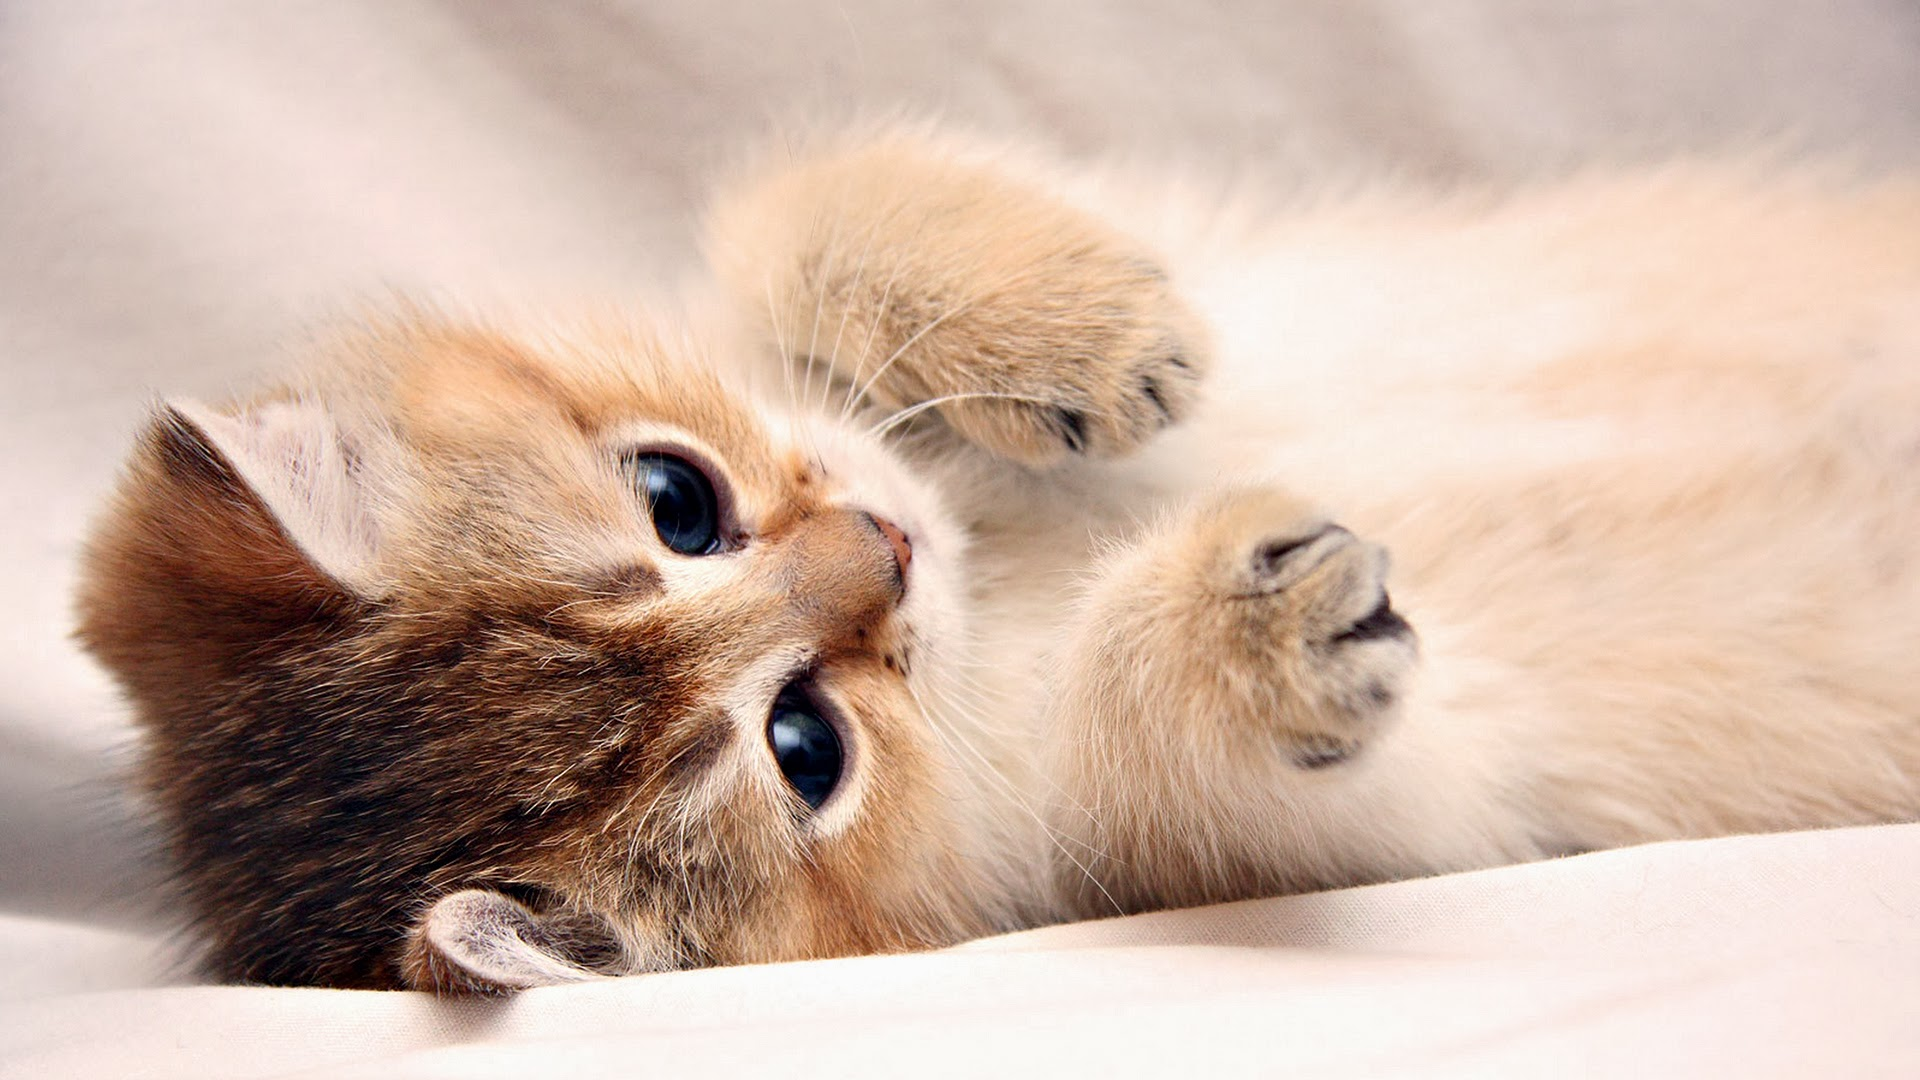 Image cute cats hd 6156 6429 hd animal - Cute kittens hd images ...